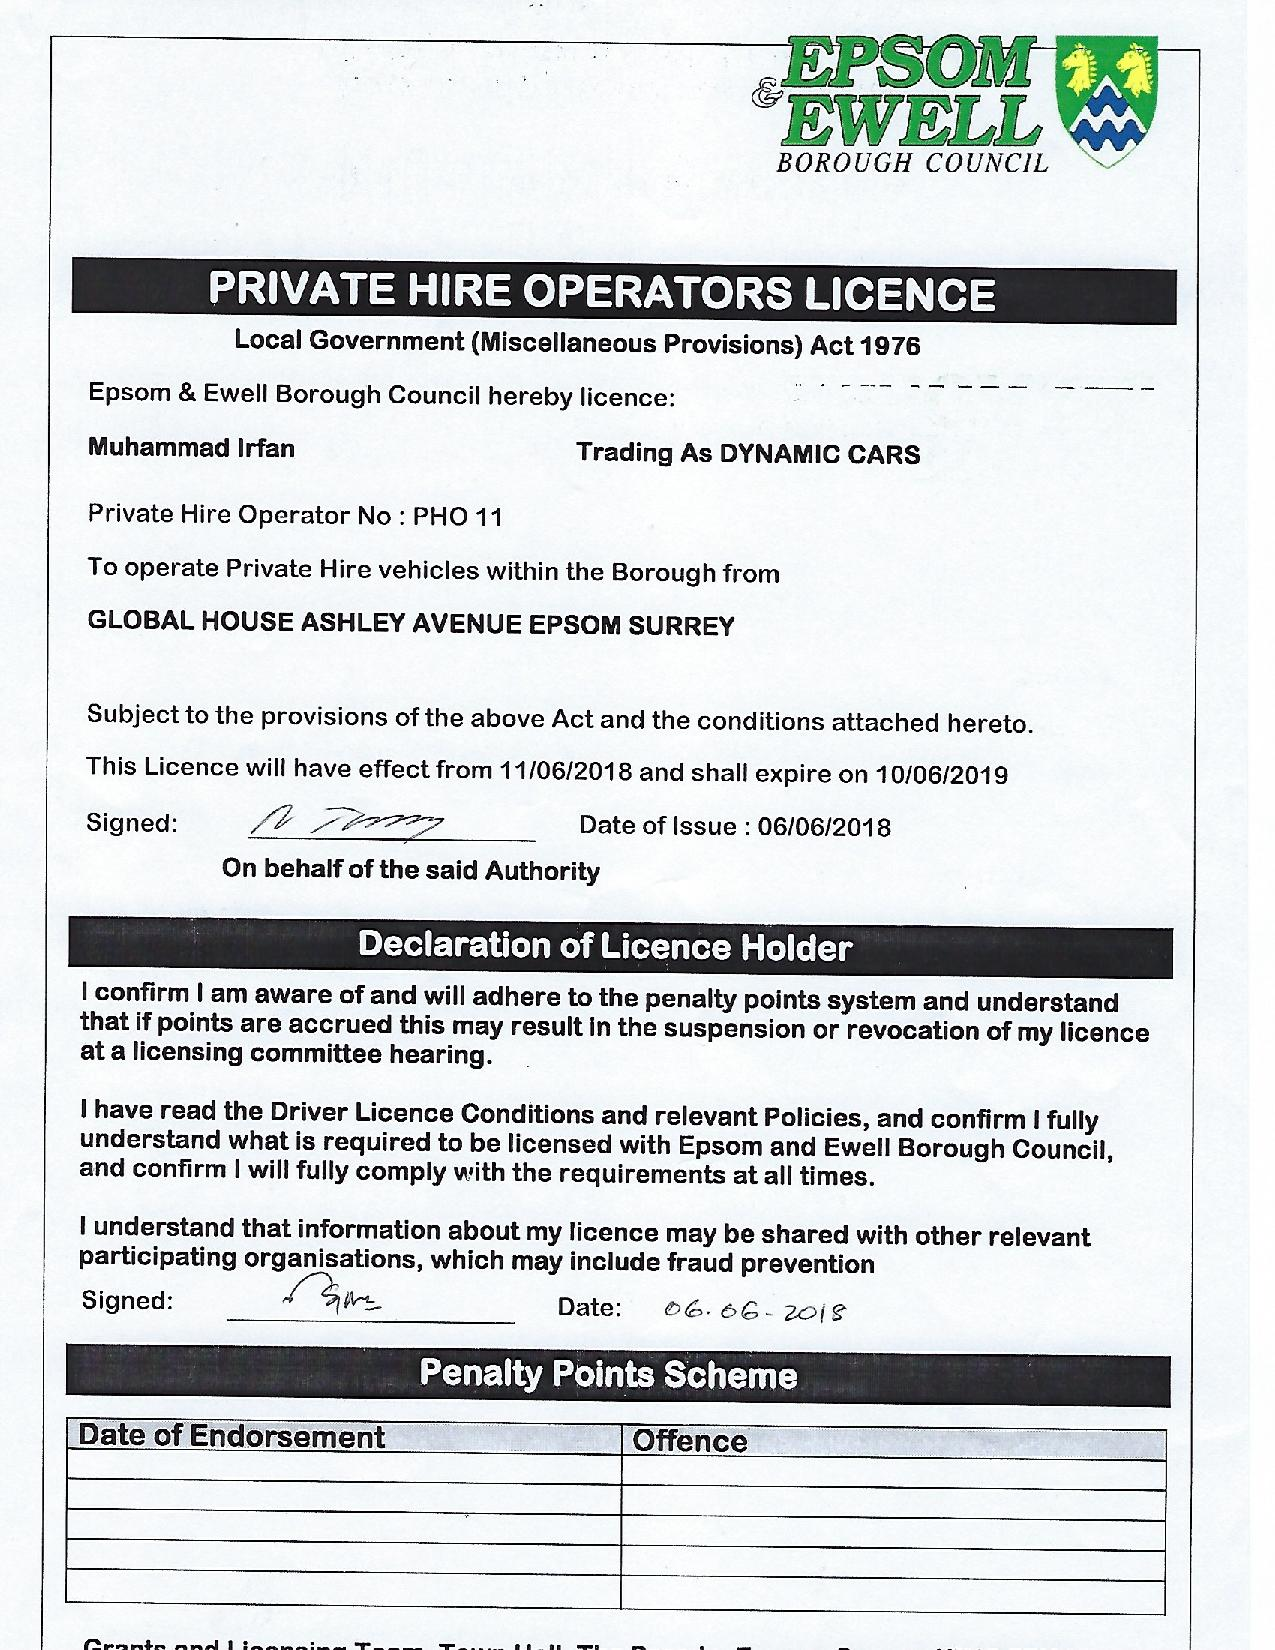 Dynamic Cars transport licence